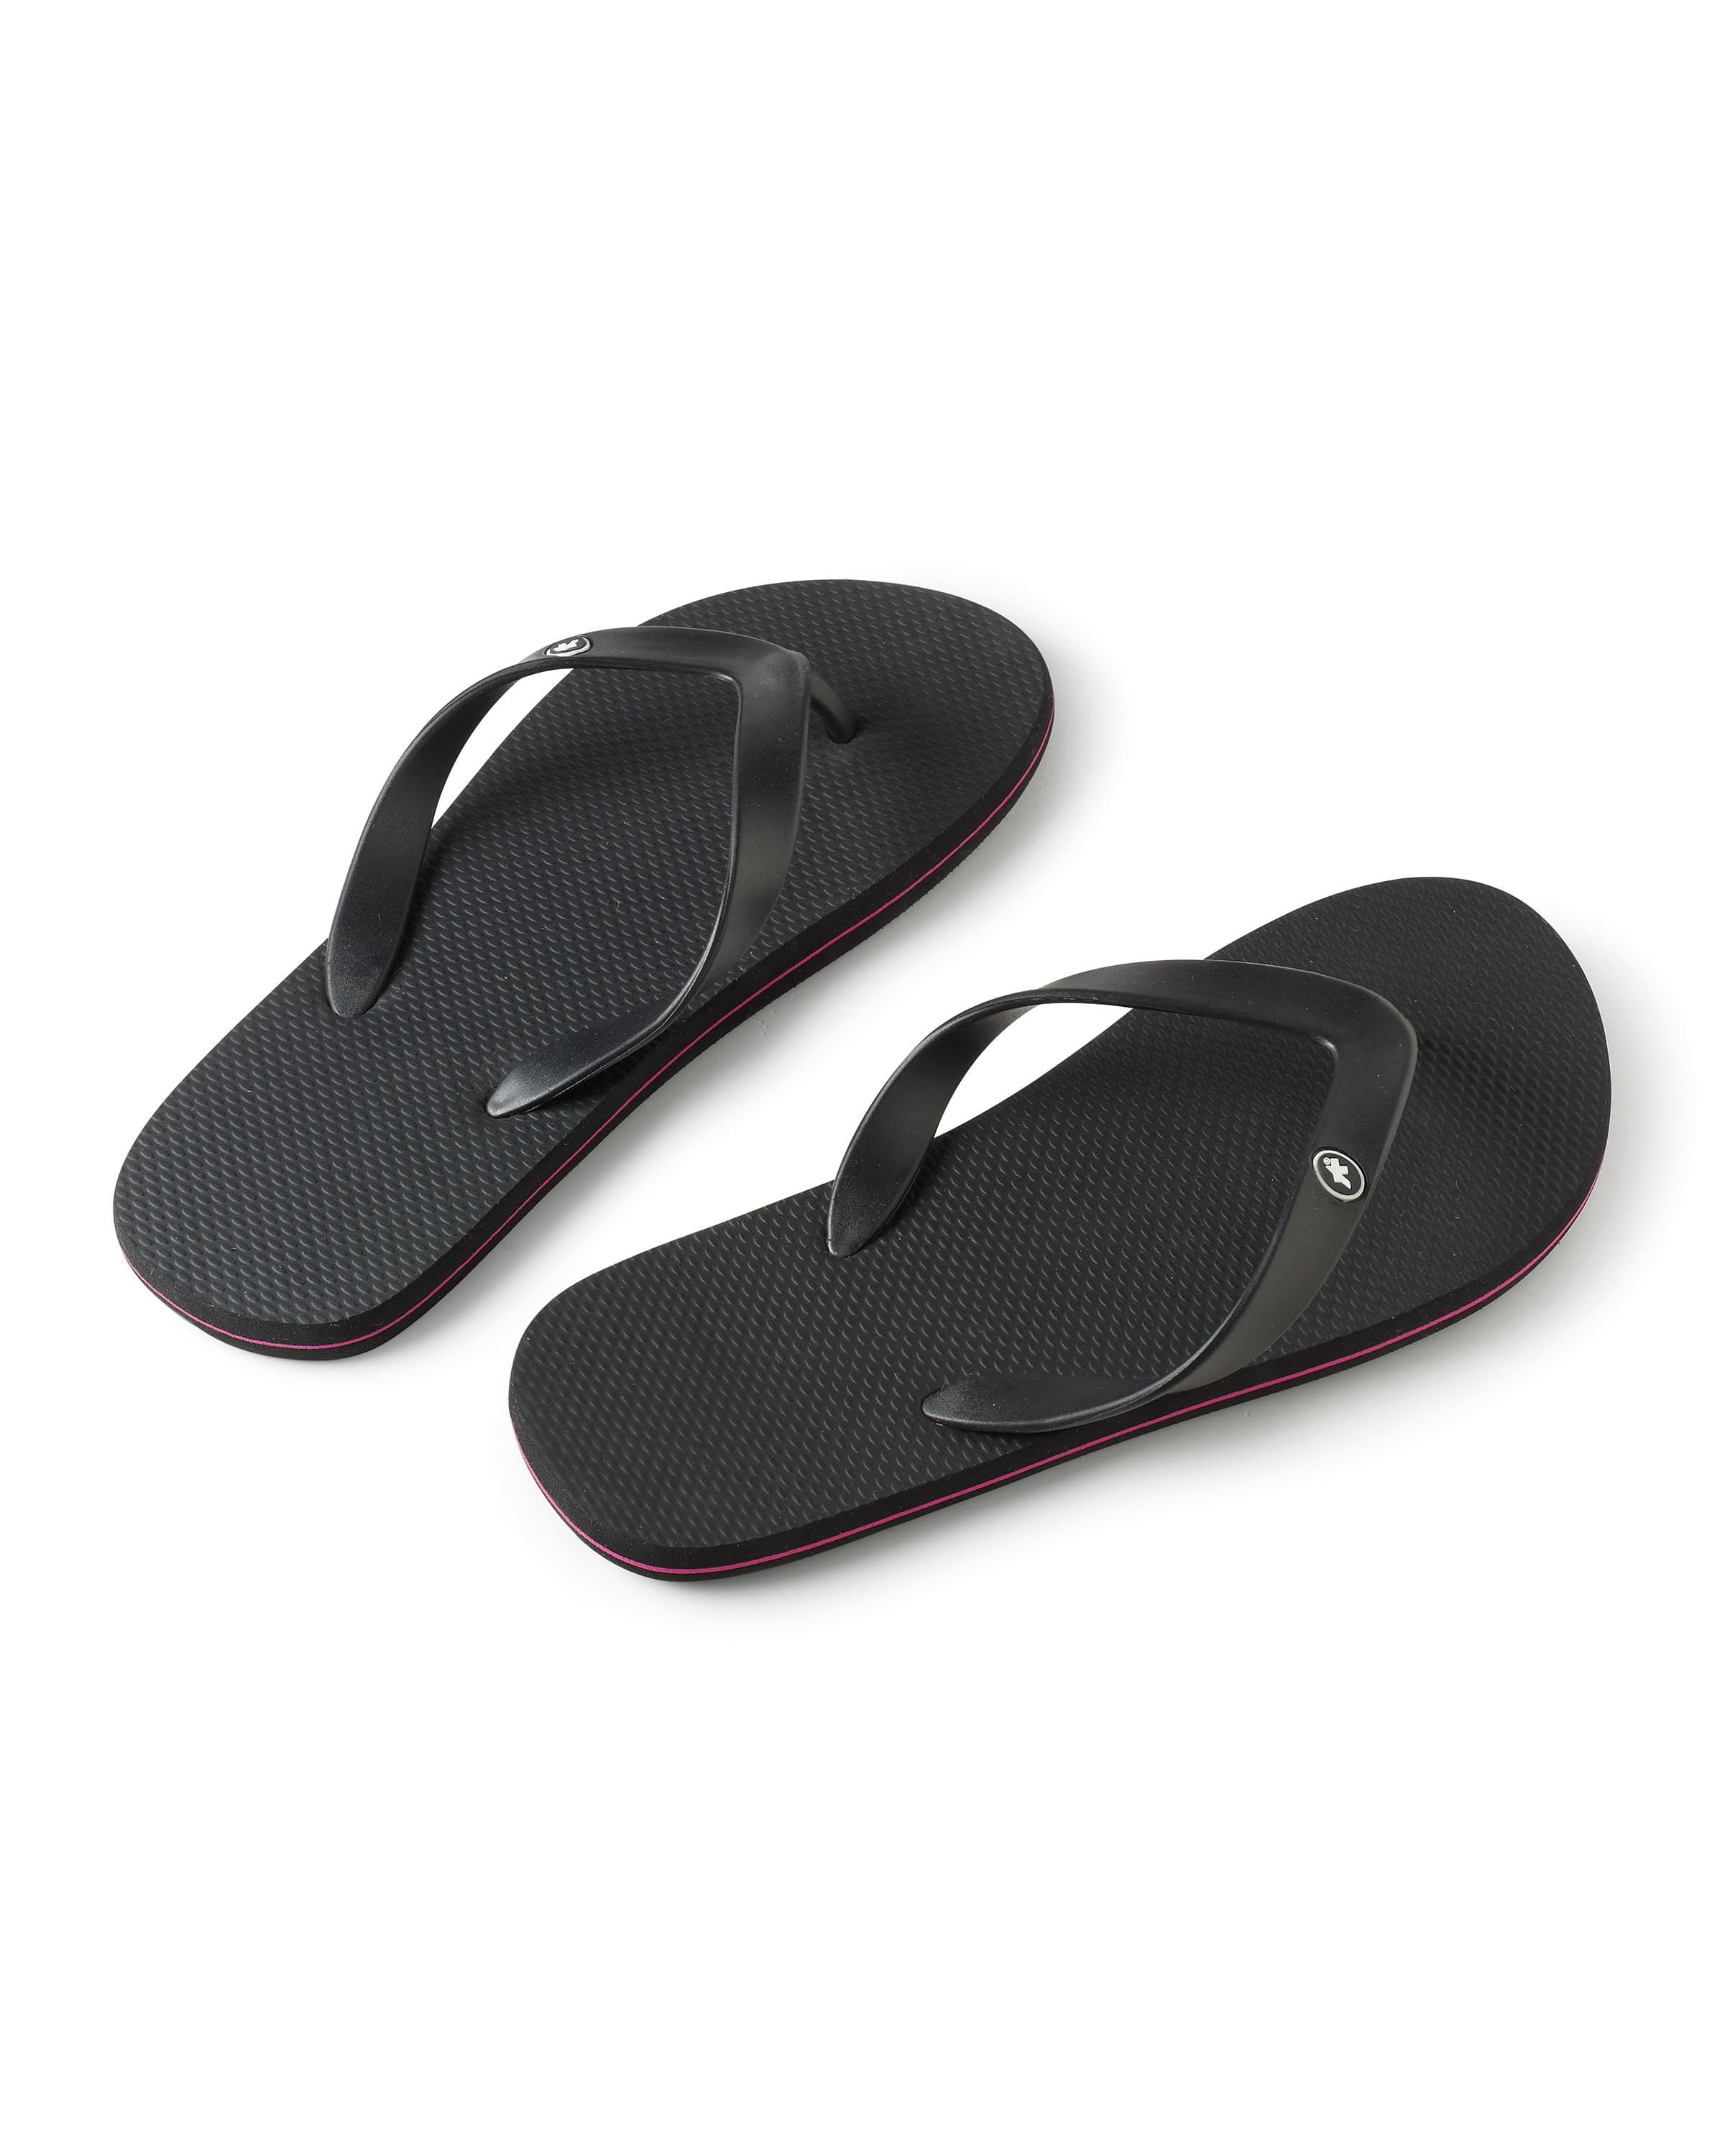 2e88403c Flip Flops | Popular flip-flops with thong in different colors and designs  Home; Flip Flop ASSOS. 1